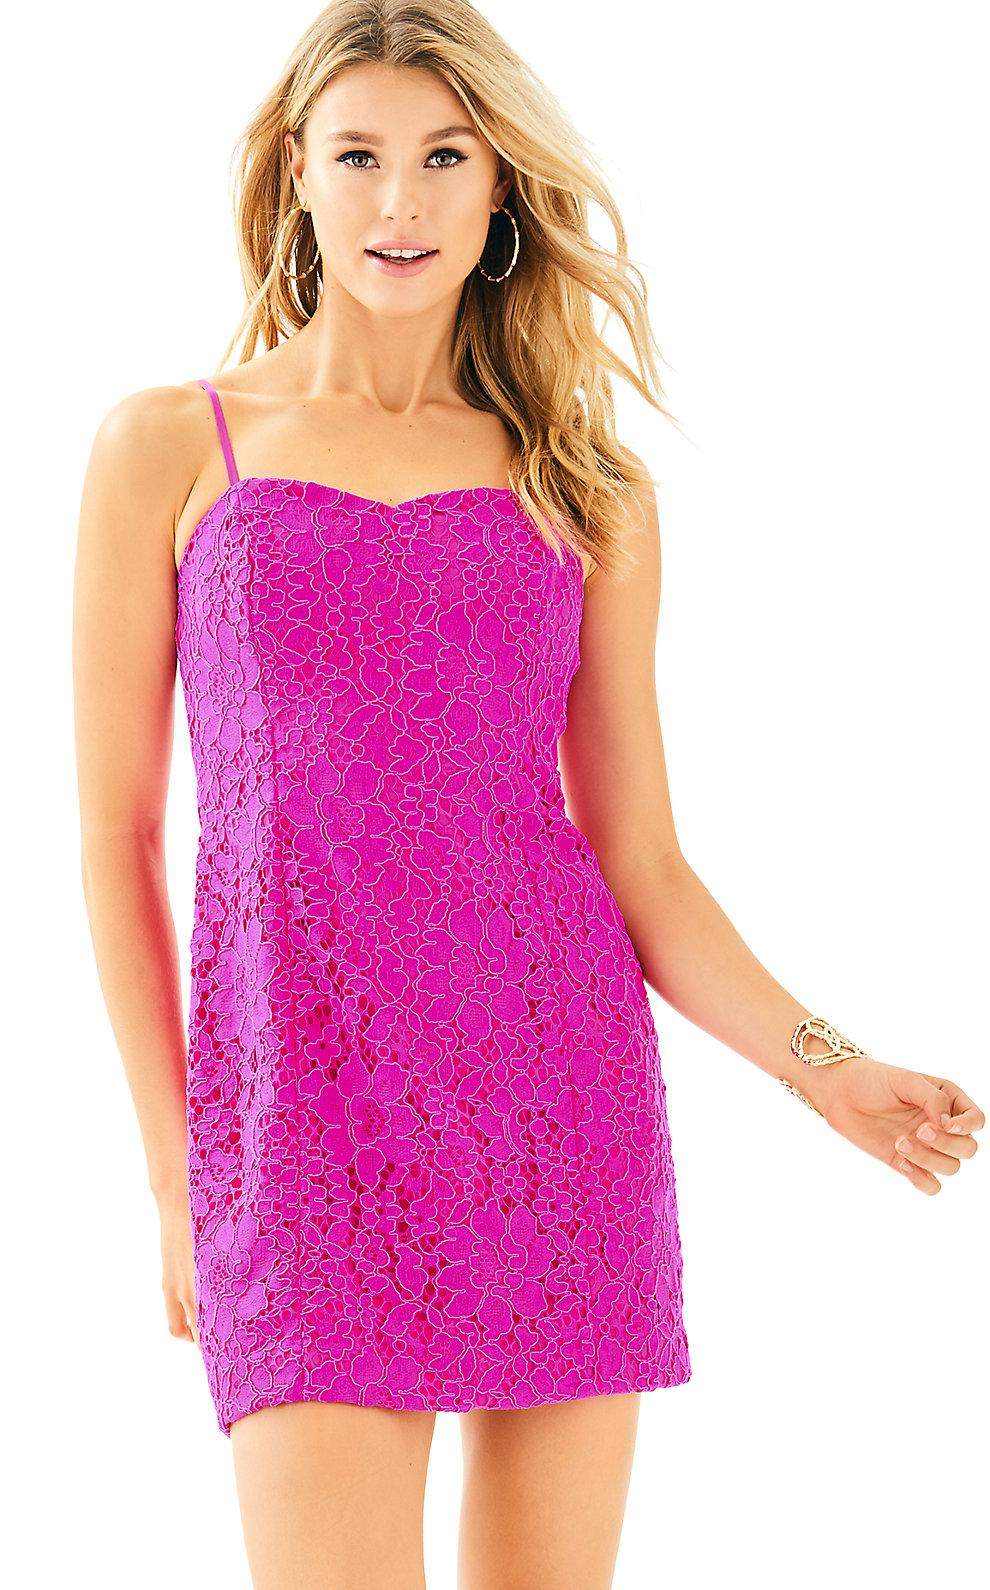 Lilly Pulitzer Demi Convertible Dress In Berry Sangria Corded Floral Lace